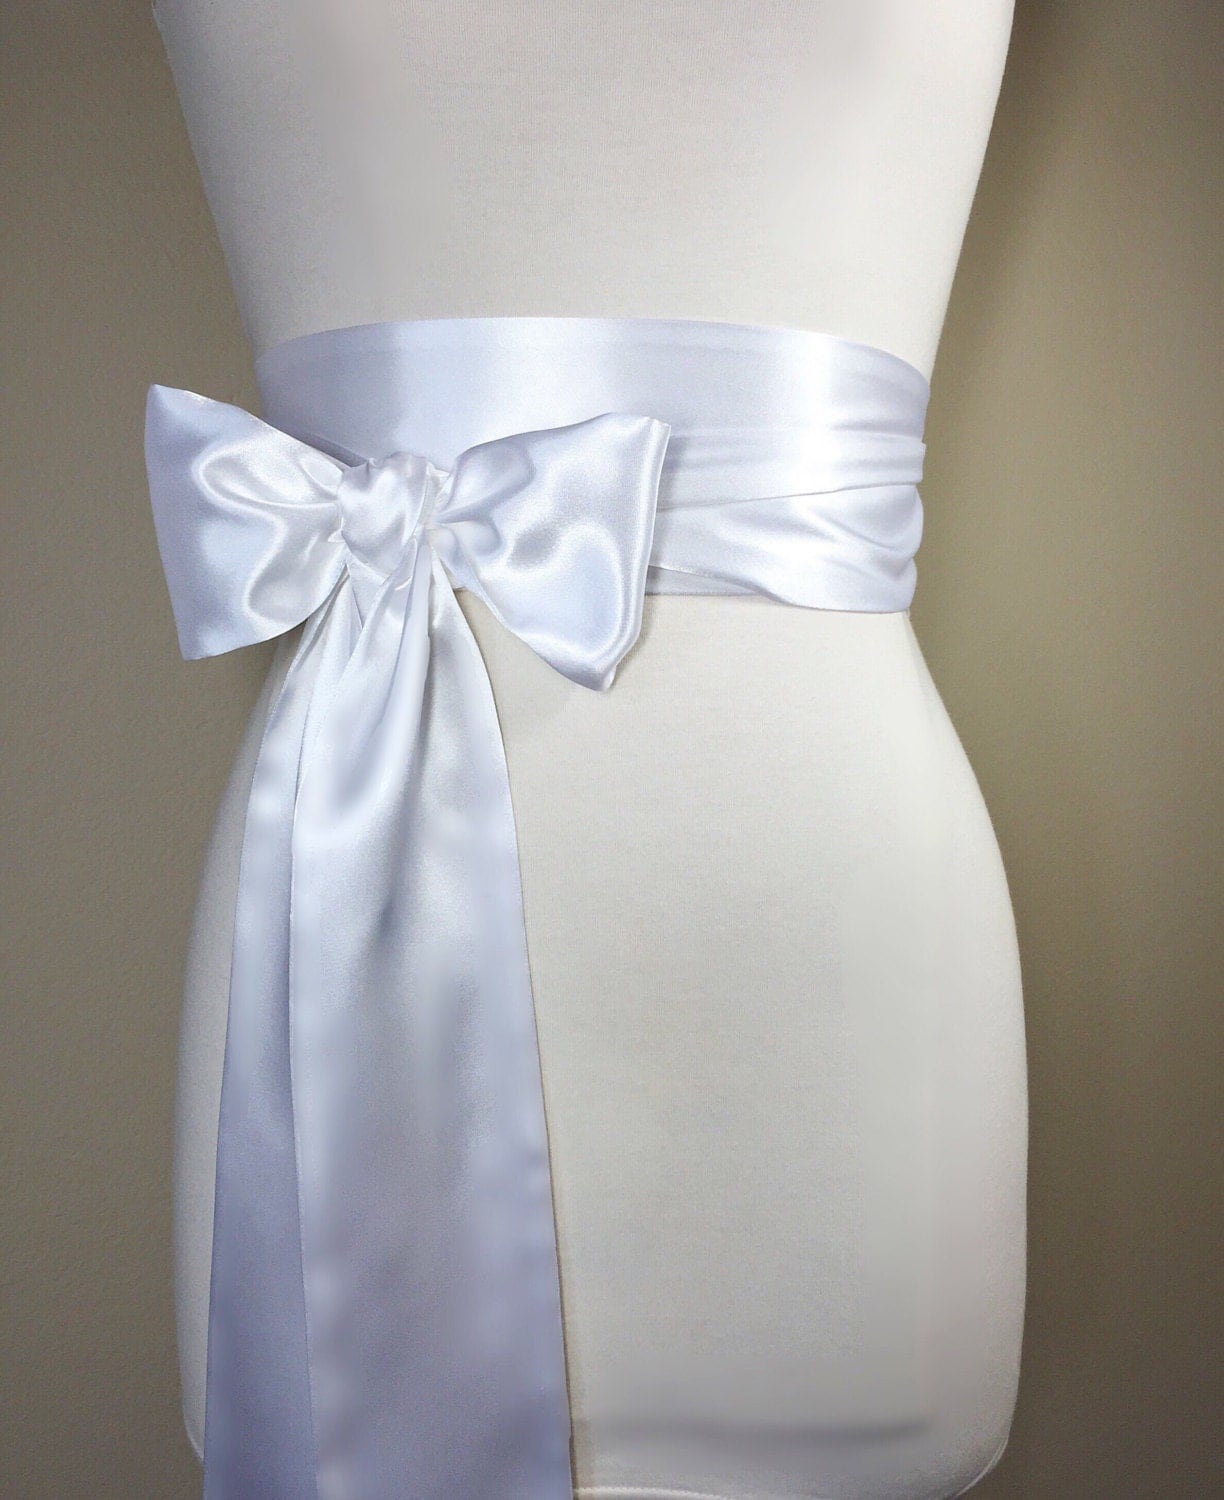 White satin sash white sash belt wedding sash bridal sash for Satin belt for wedding dress